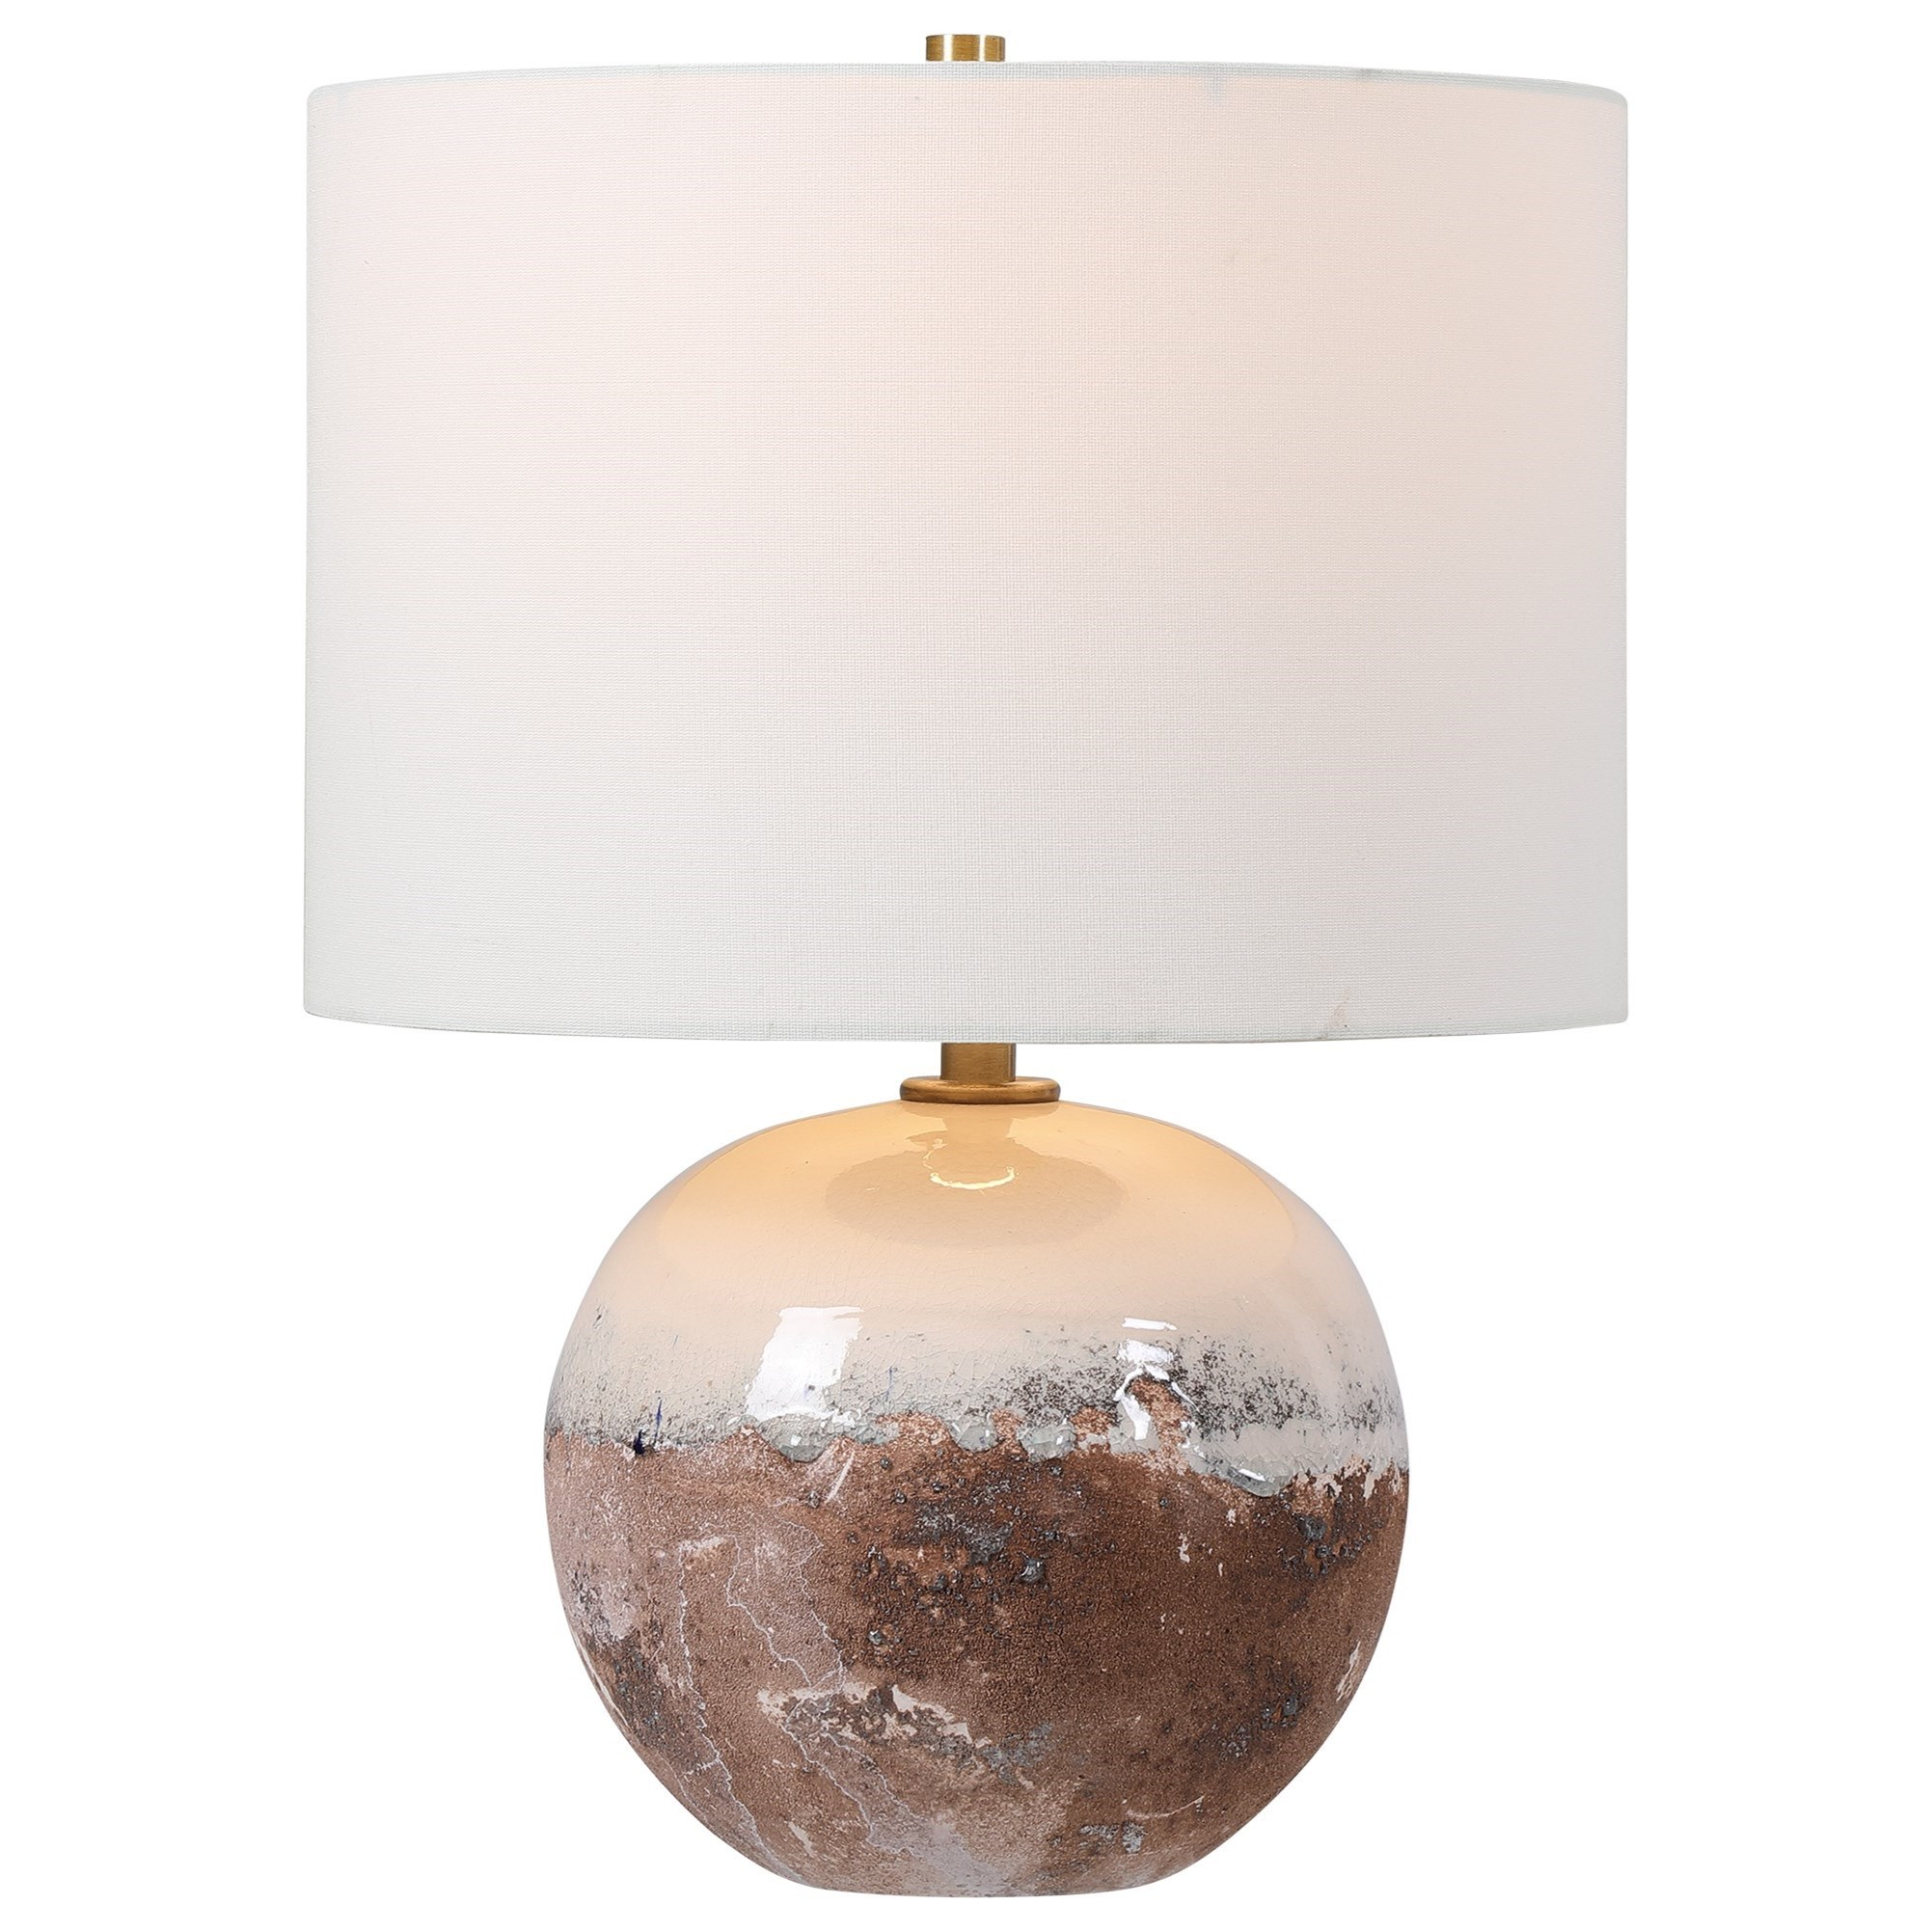 Accent Lamps Durango Terracotta Accent Lamp by Uttermost at Sprintz Furniture